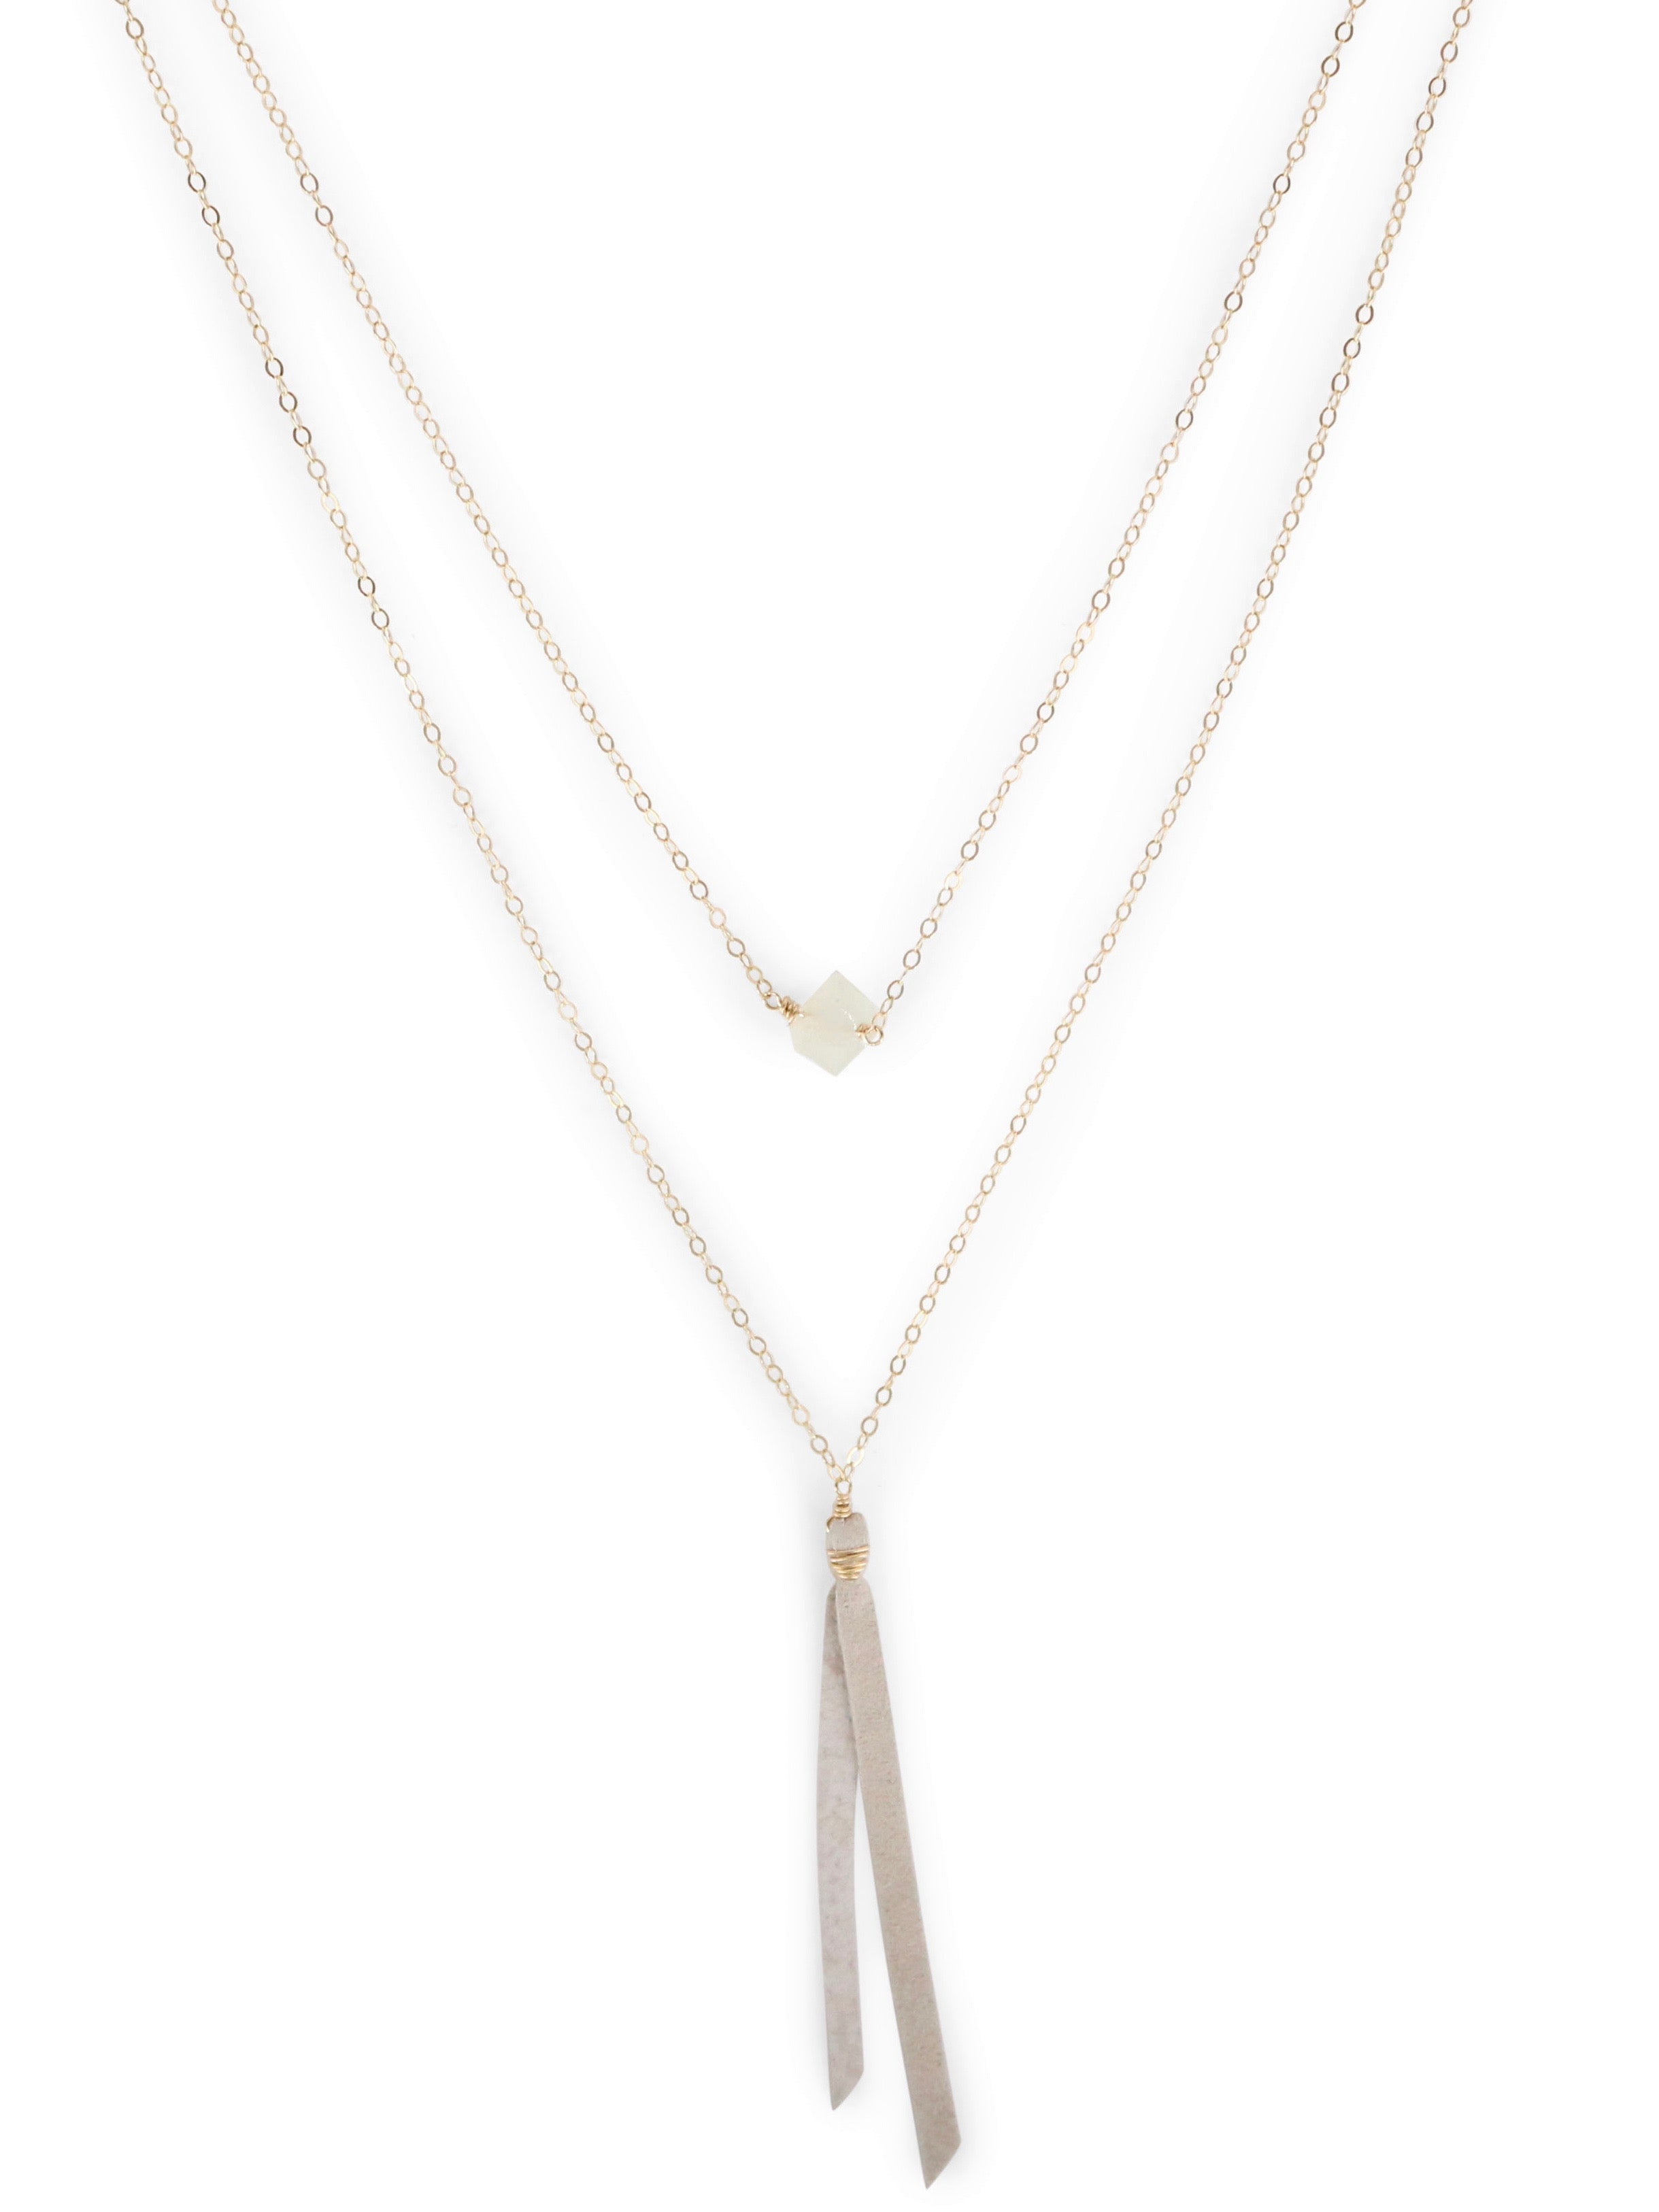 beau delicate link simple crystal tier graceful chain jewelry clara swarovski necklace seahorse